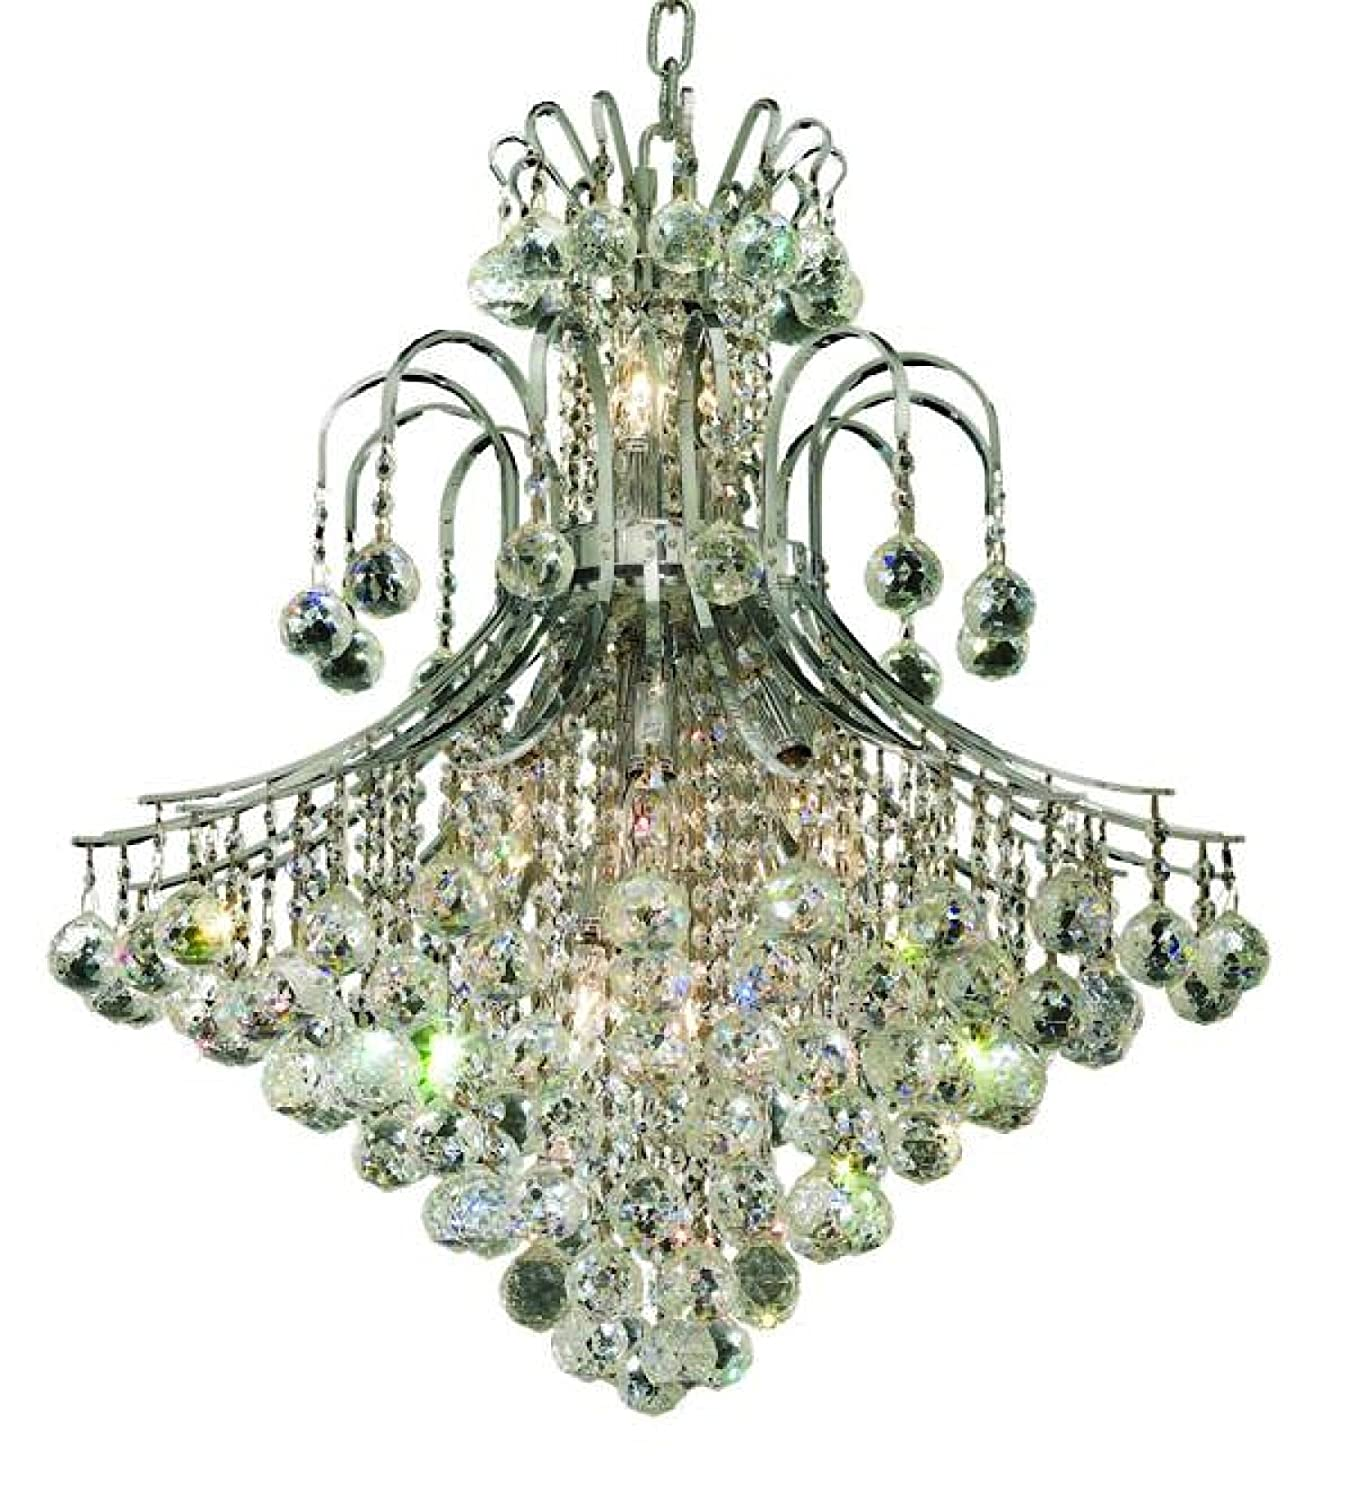 Elegant lighting 8003d25crc toureg 31 inch high 15 light elegant lighting 8003d25crc toureg 31 inch high 15 light chandelier chrome finish with crystal clear royal cut rc crystal amazon arubaitofo Choice Image